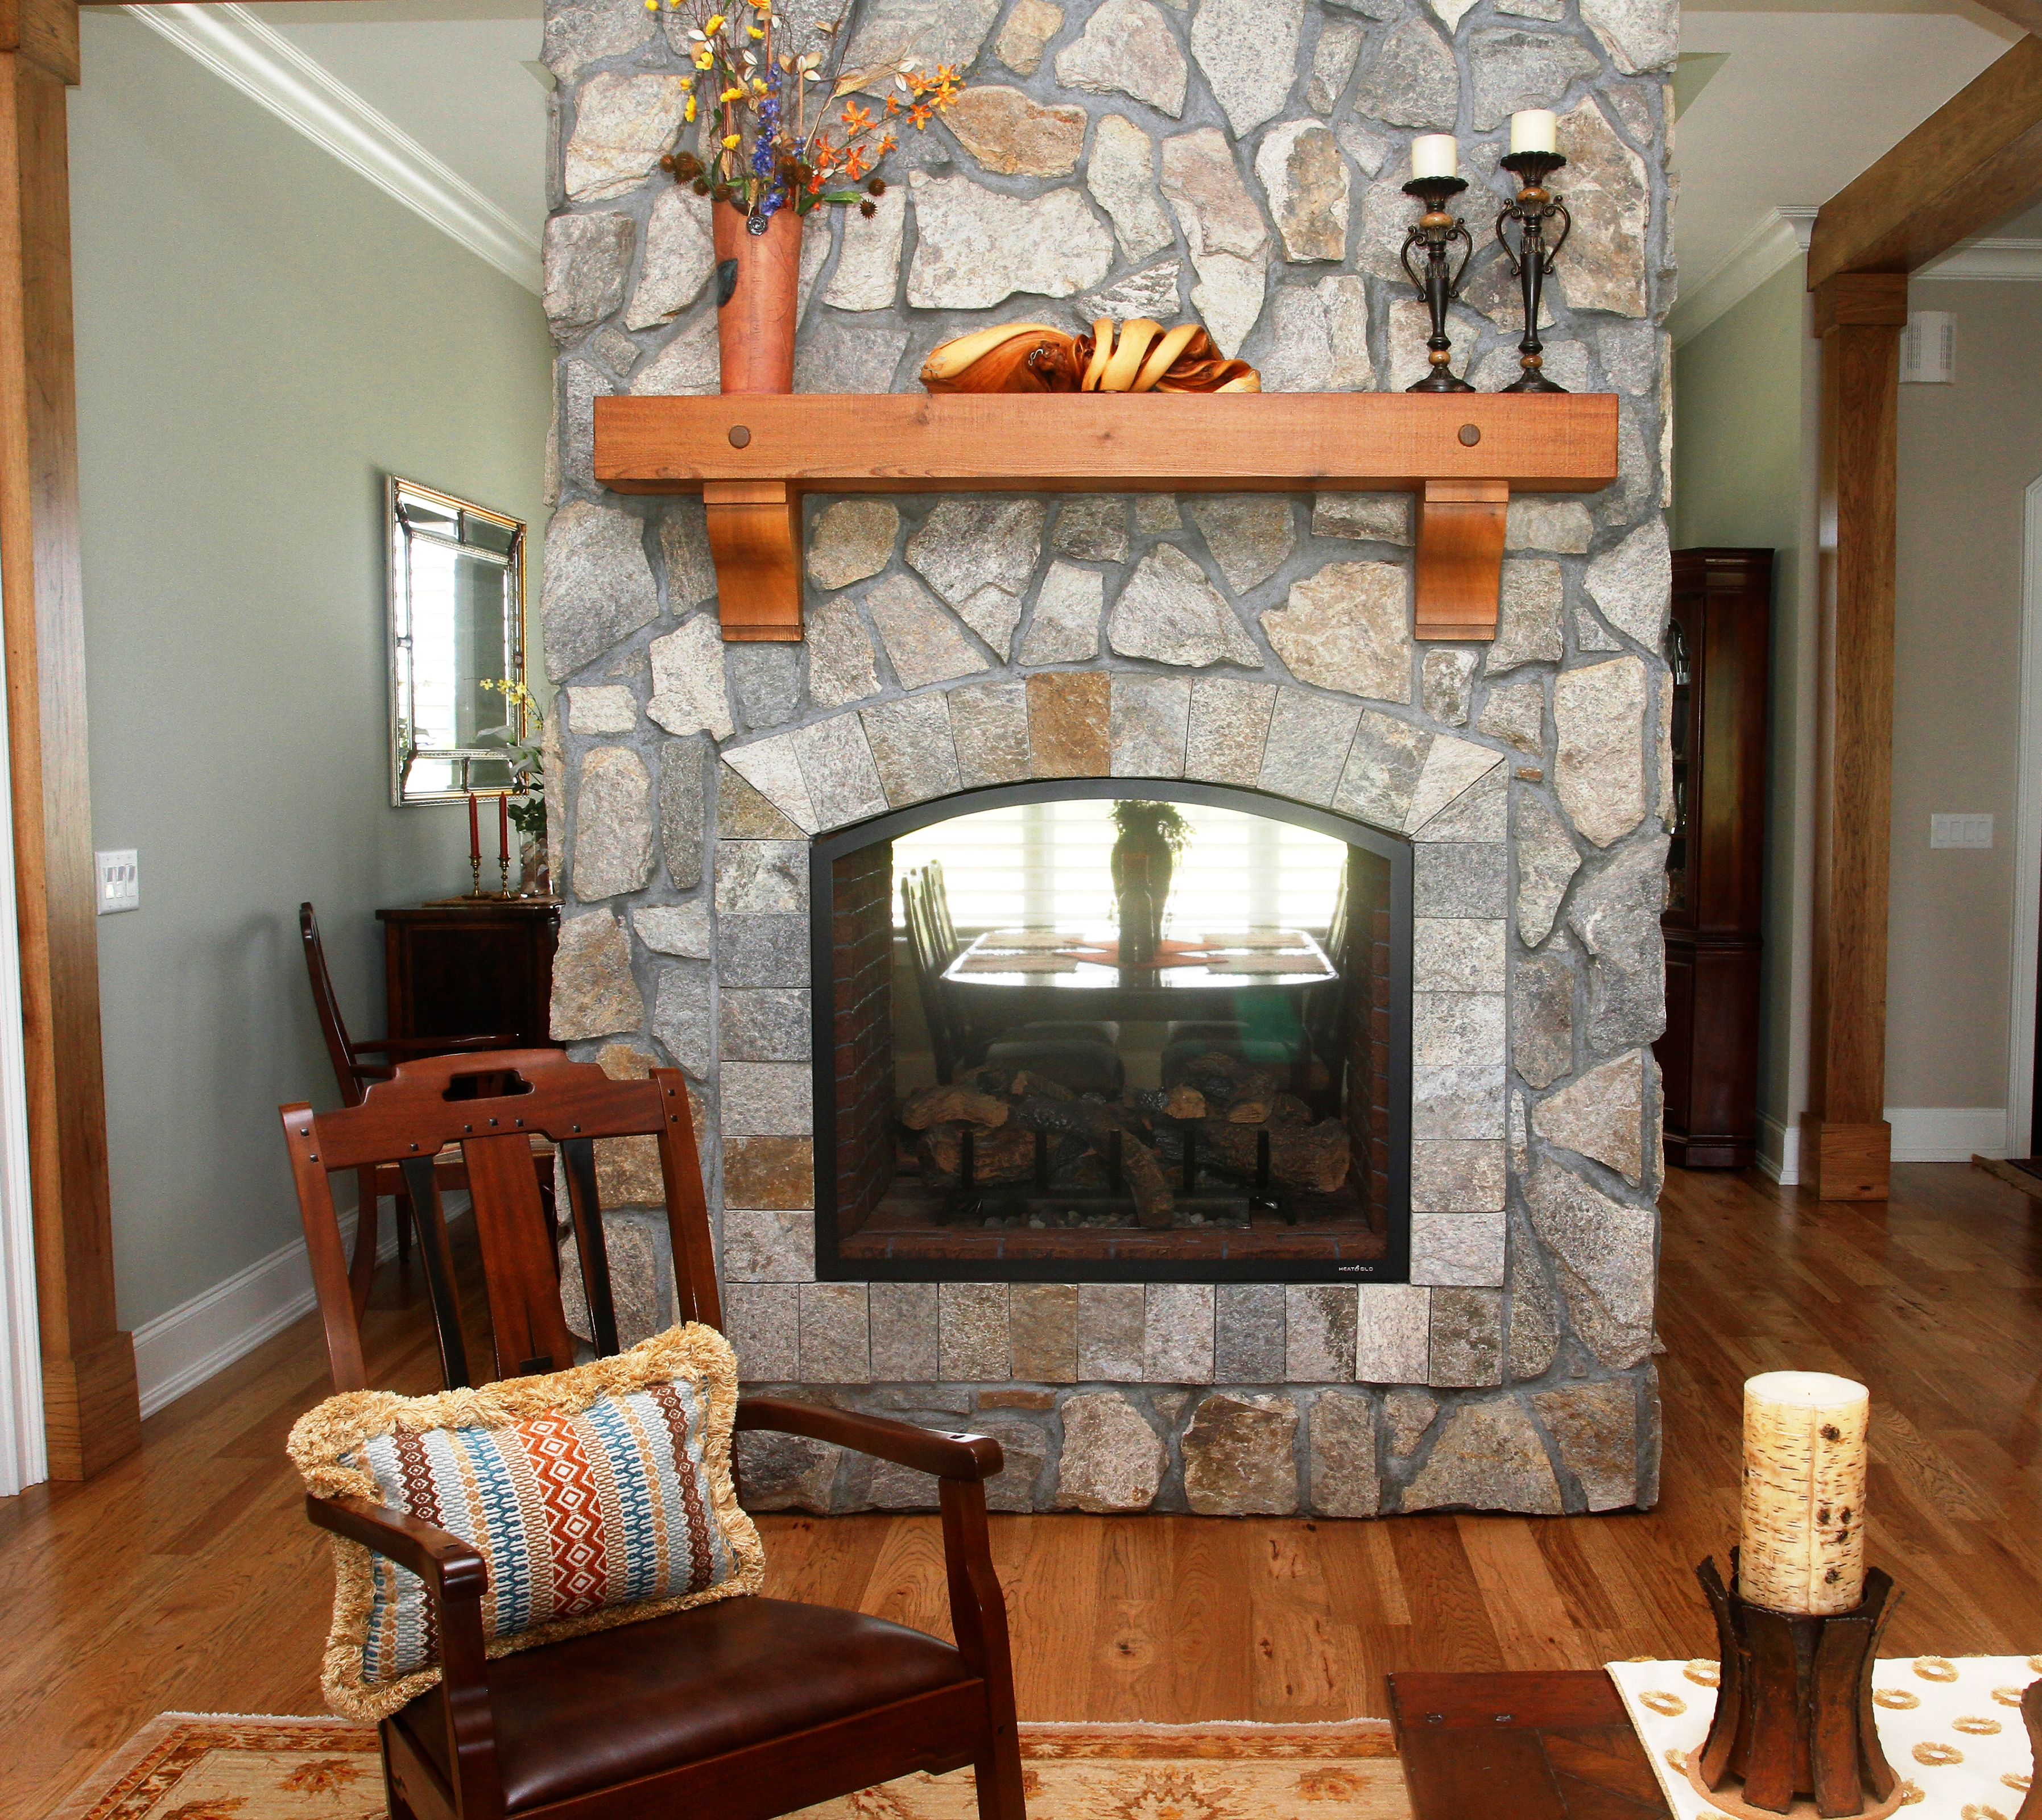 stone double-sided fireplace in a living room